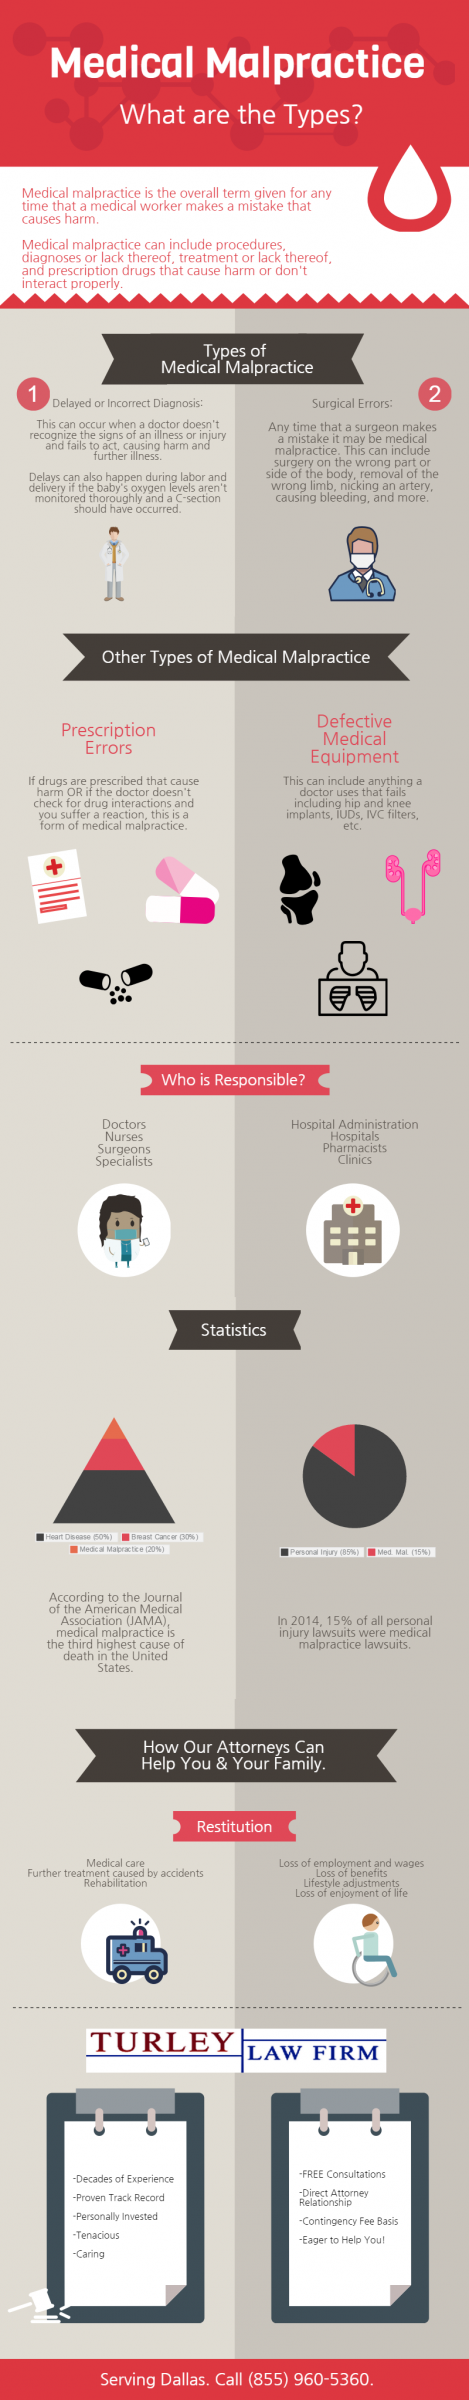 Types of Medical Malpractice Infographic | Dallas Lawyers